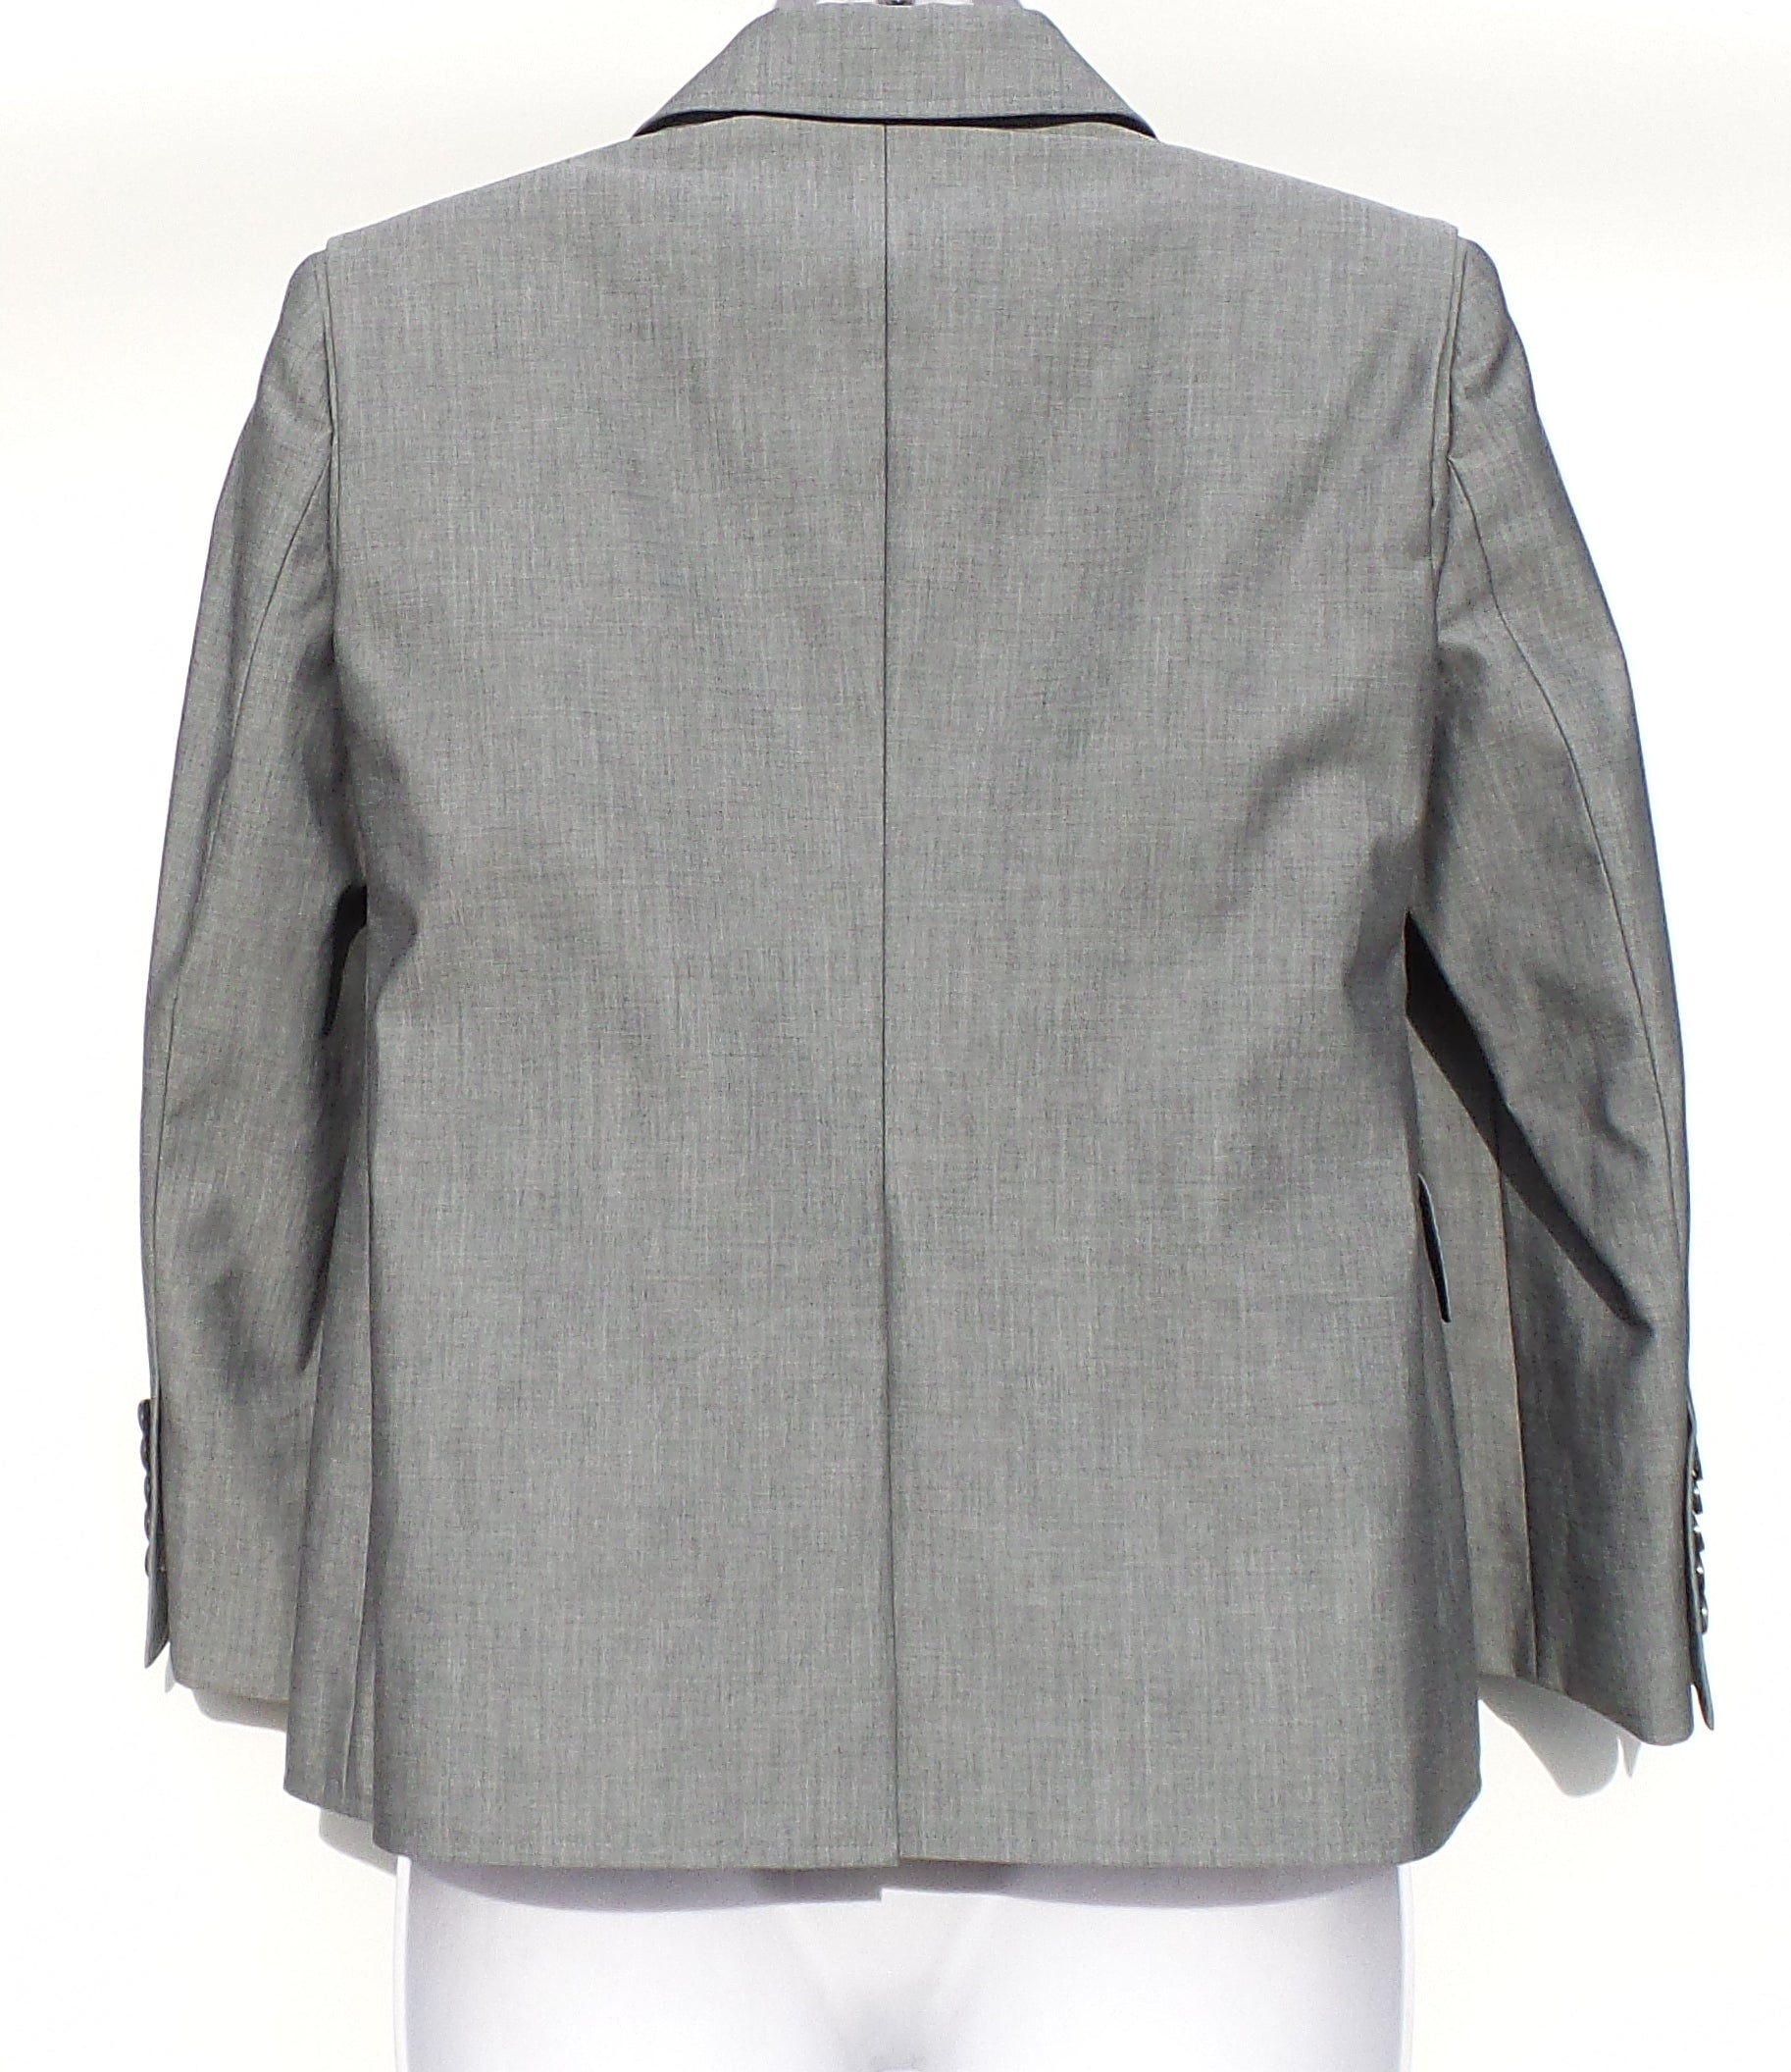 BALENCIAGA Light Gray Boxy Double Breasted Jacket FR 36